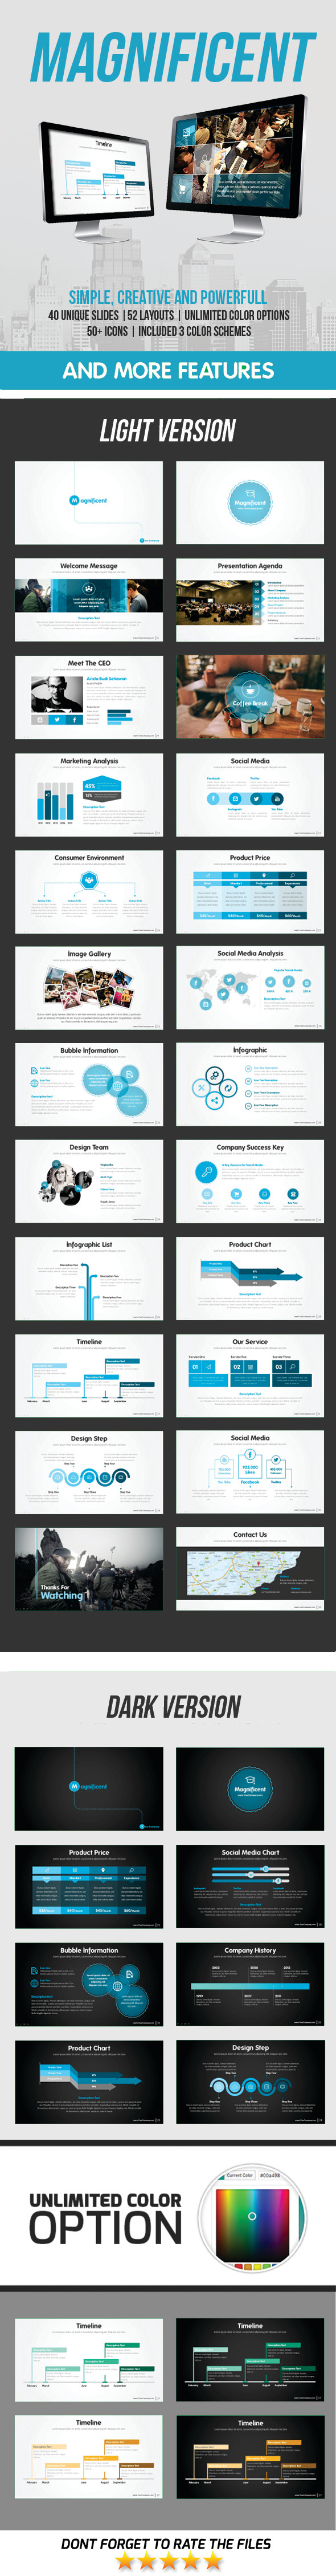 Magnificent PowerPoint Template - Business PowerPoint Templates